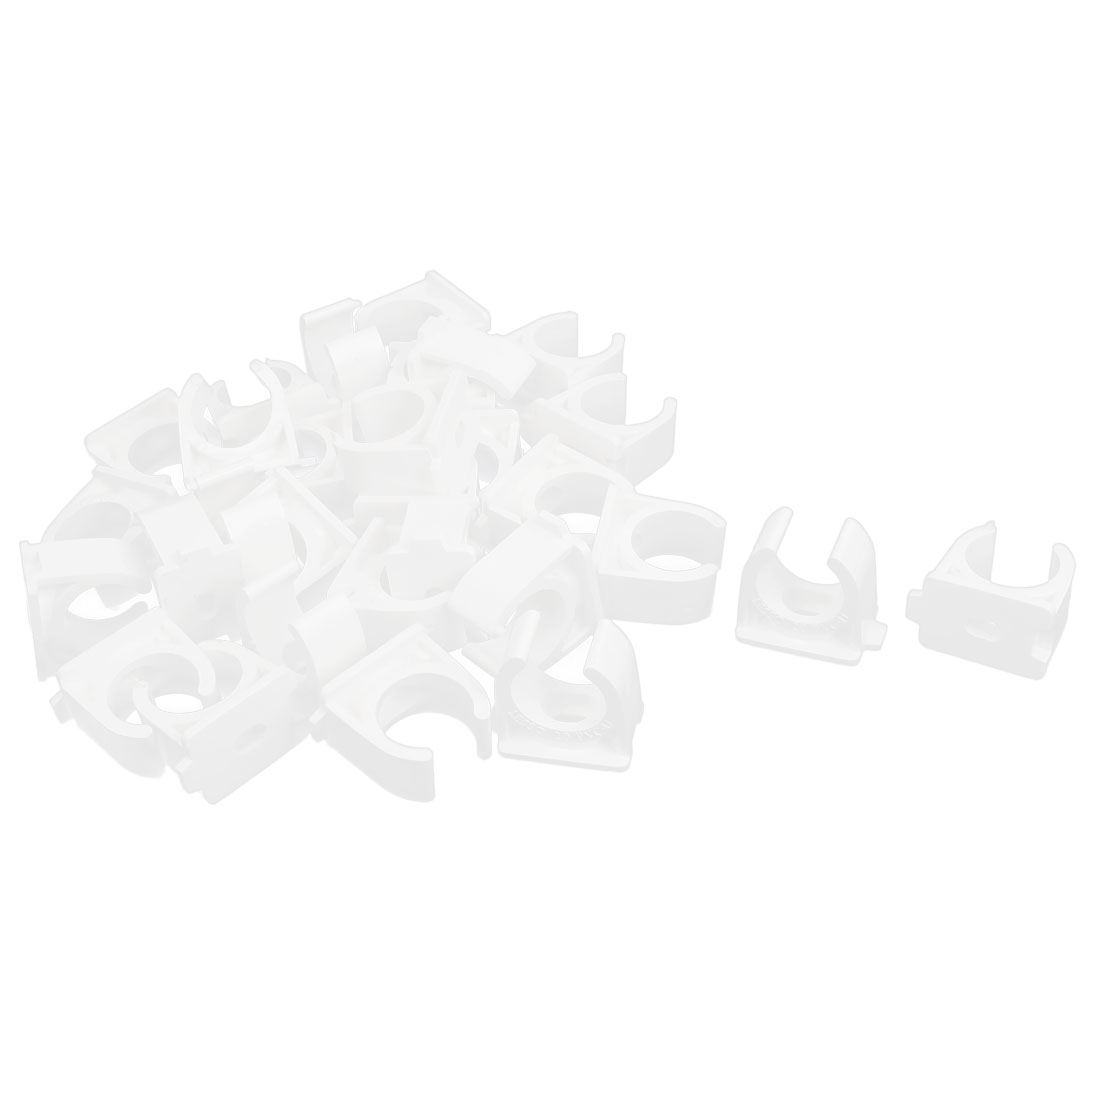 PVC Multi Function Pipe Clamps Clips Preloaded Nail White 20mm Diameter 30Pcs